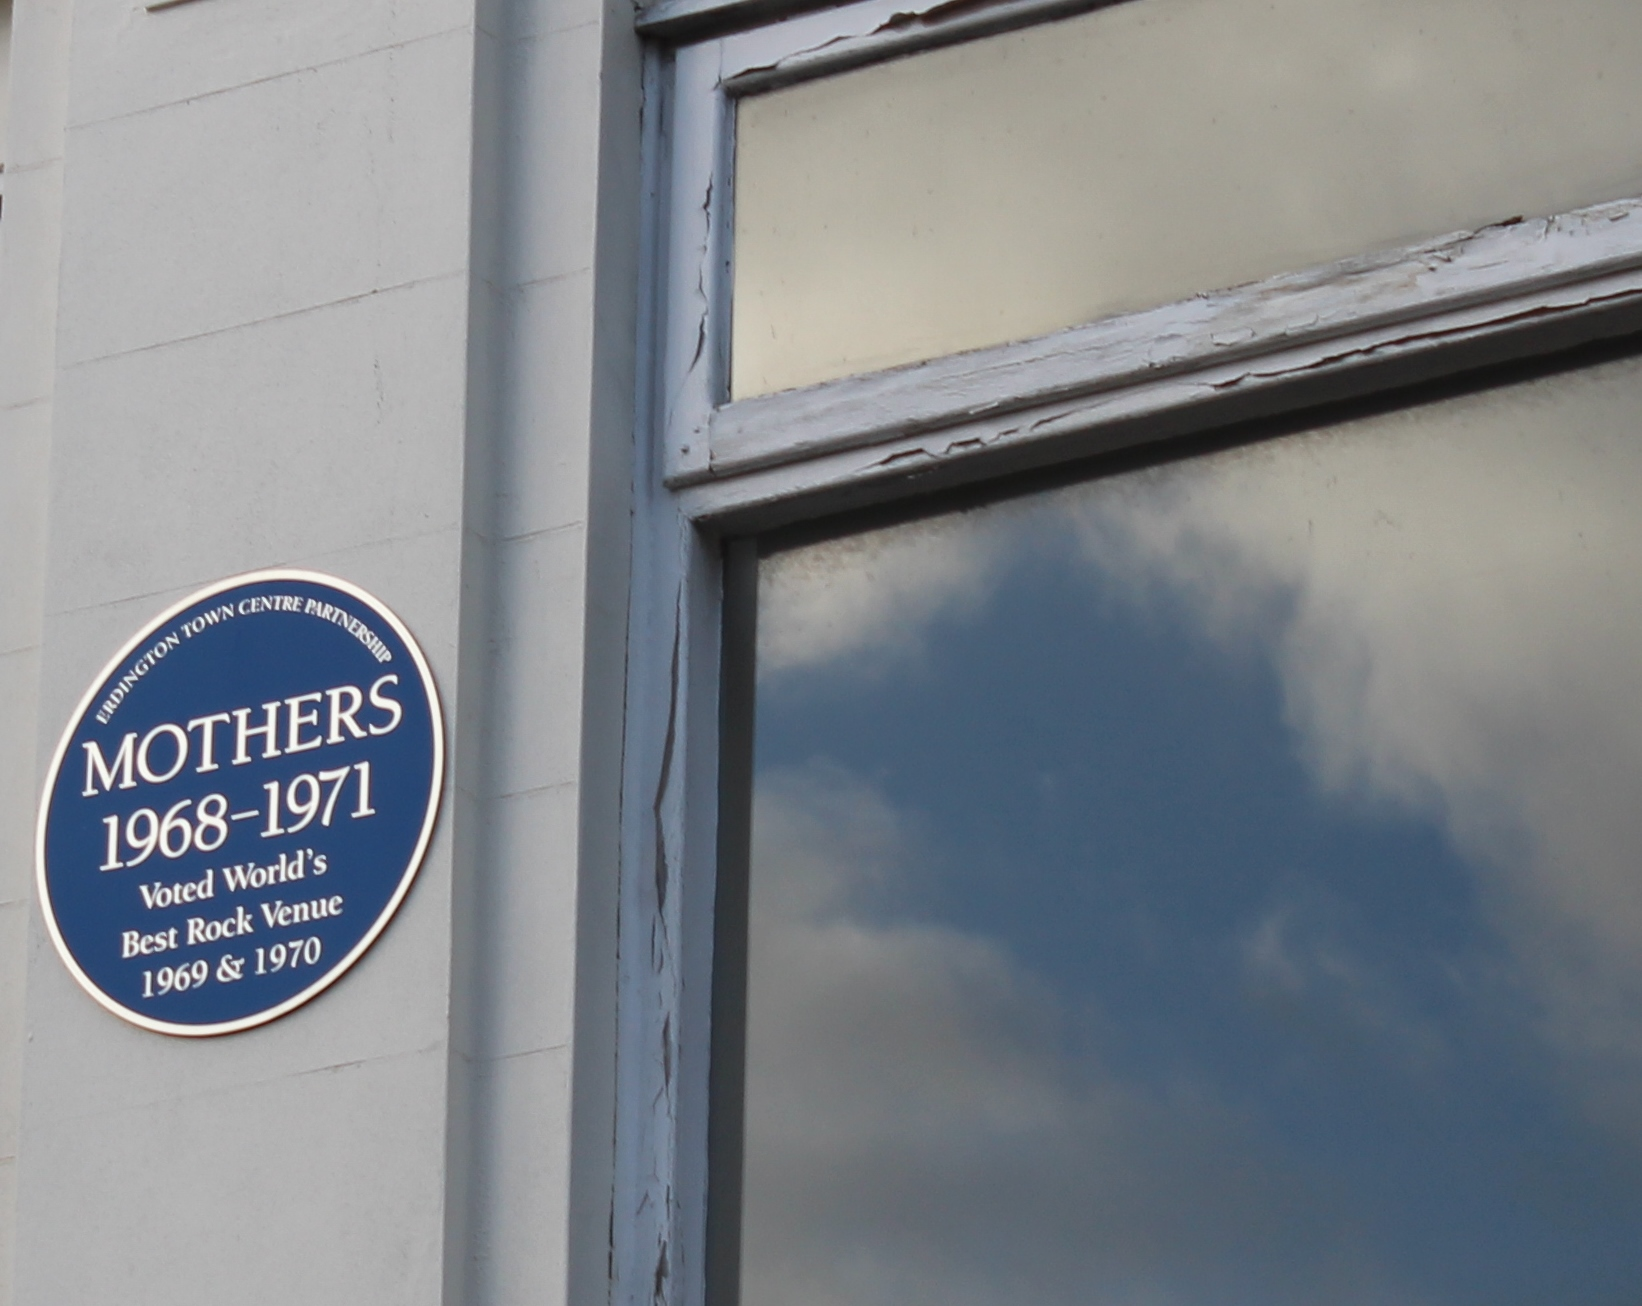 Mothers 2 blue plaque inset